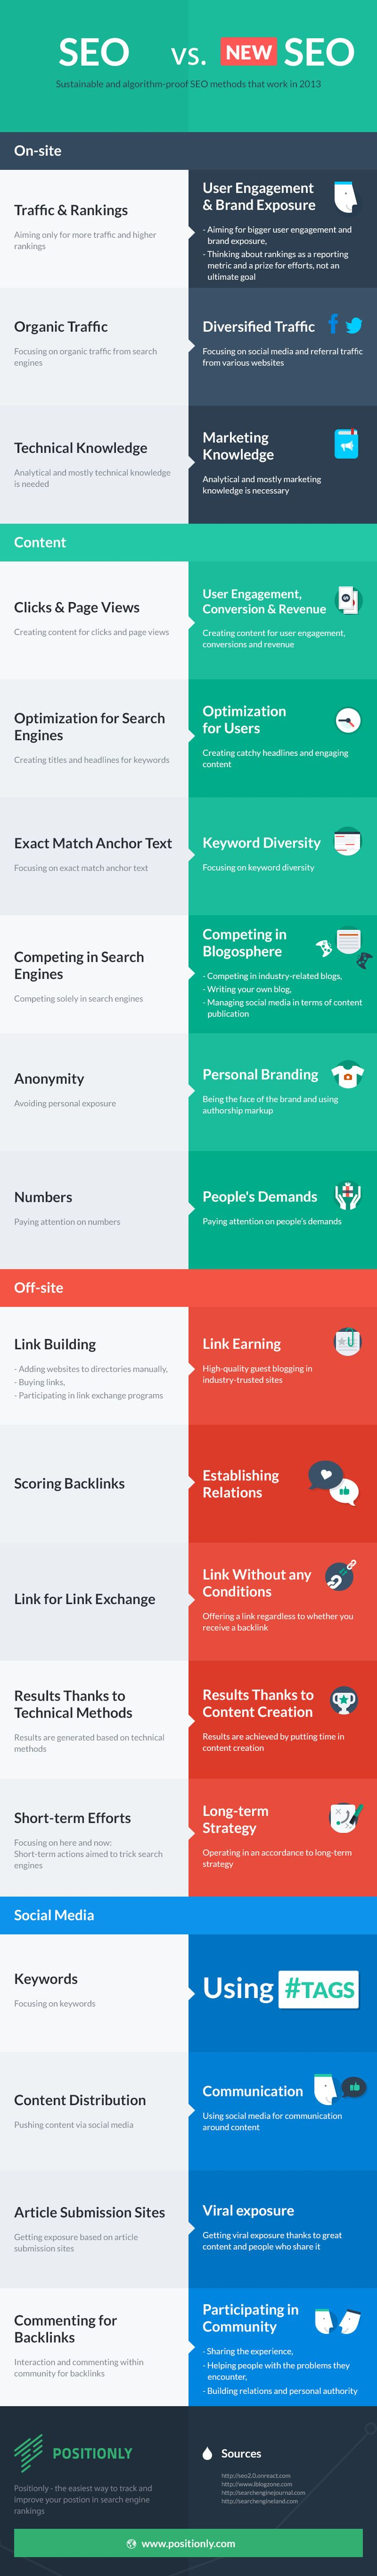 19 Sustainable SEO and SERP Methods for 2014 and Beyond [Infographics] -- [SEO] [SEO Strategy] [Web Marketing] [Best-practice] [Digital Trends] #DigitalE45DK